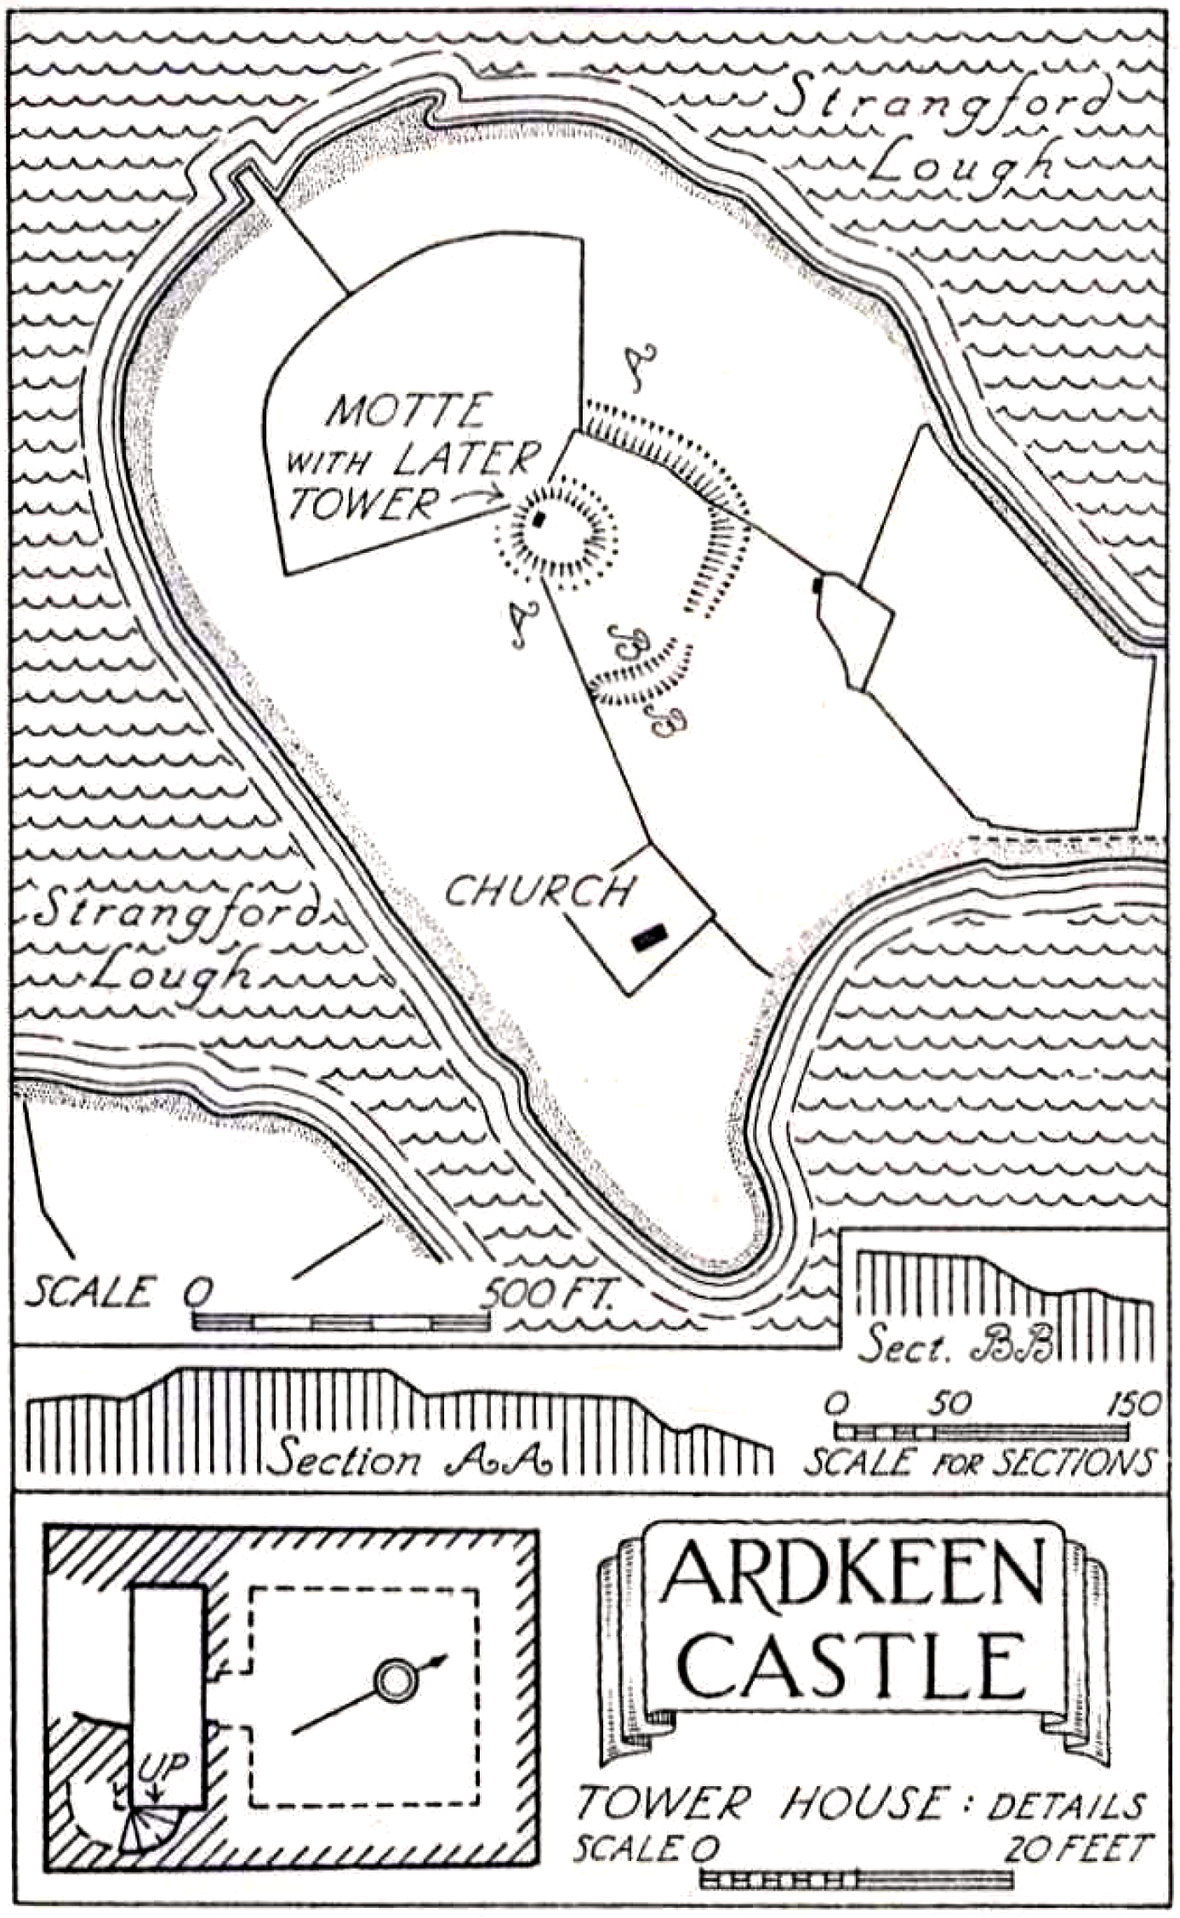 Ardkeeen (Castle Hill) Plan, Strangford, County Down